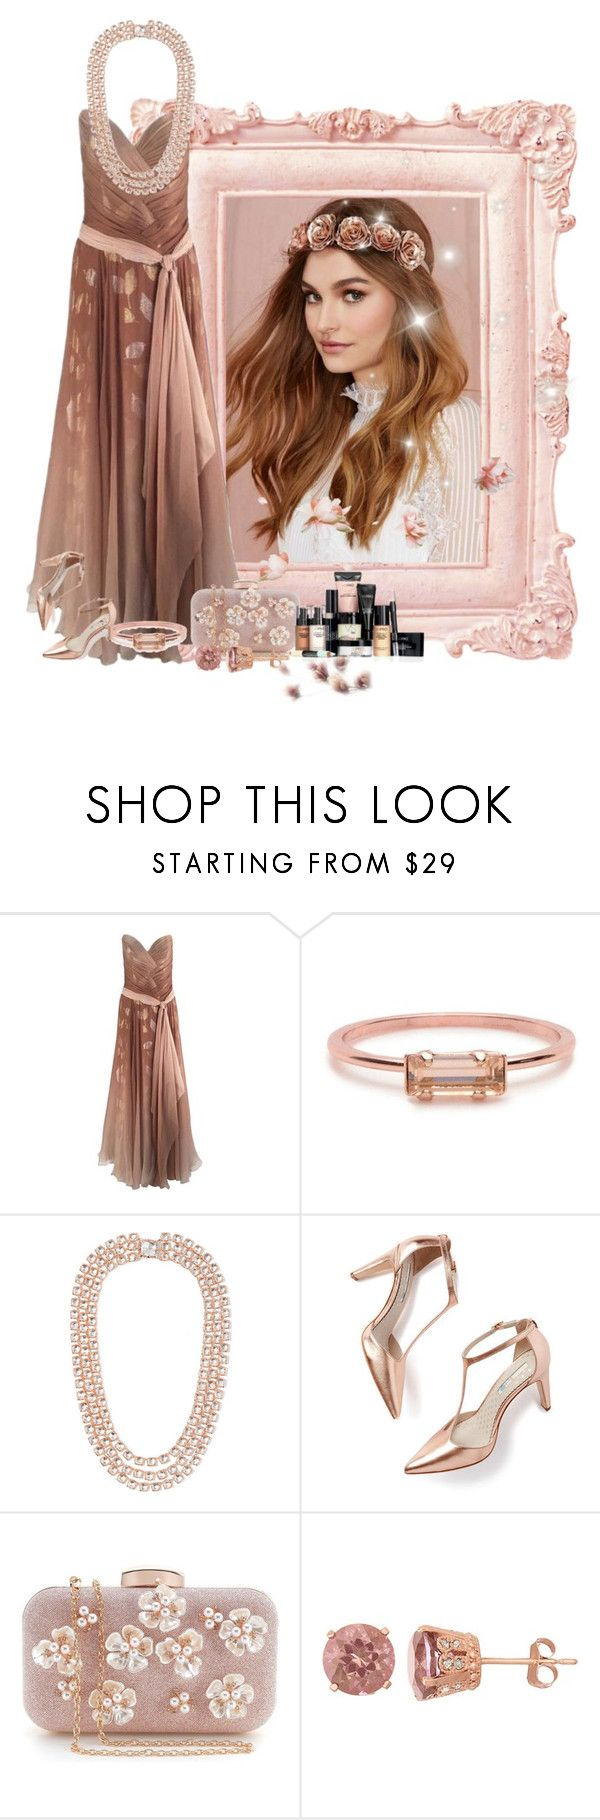 """""""ombre"""" by sensitiveheart ❤ liked on Polyvore featuring Bob Mackie, Bing Bang, Larkspur & Hawk, Boden, David Tutera and Victoria's Secret"""